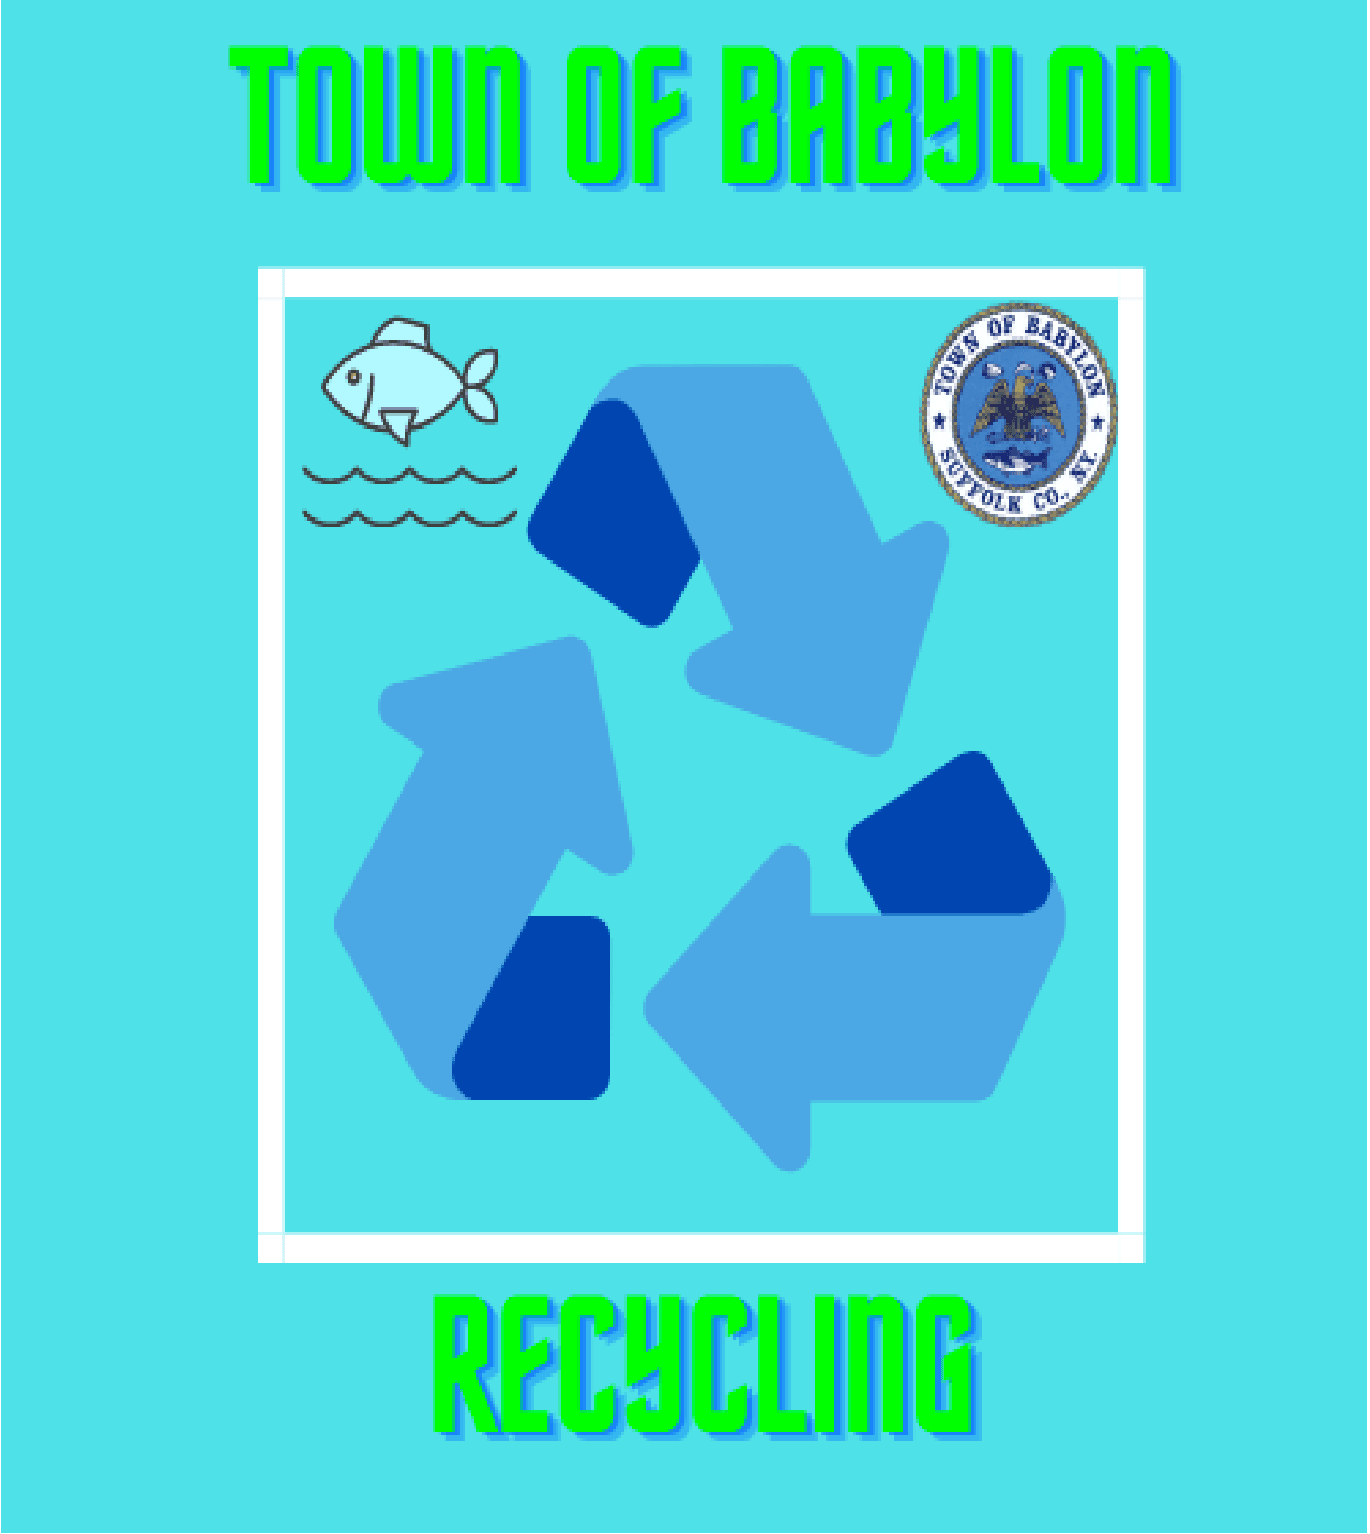 Recycling Booklet Cover (PNG)